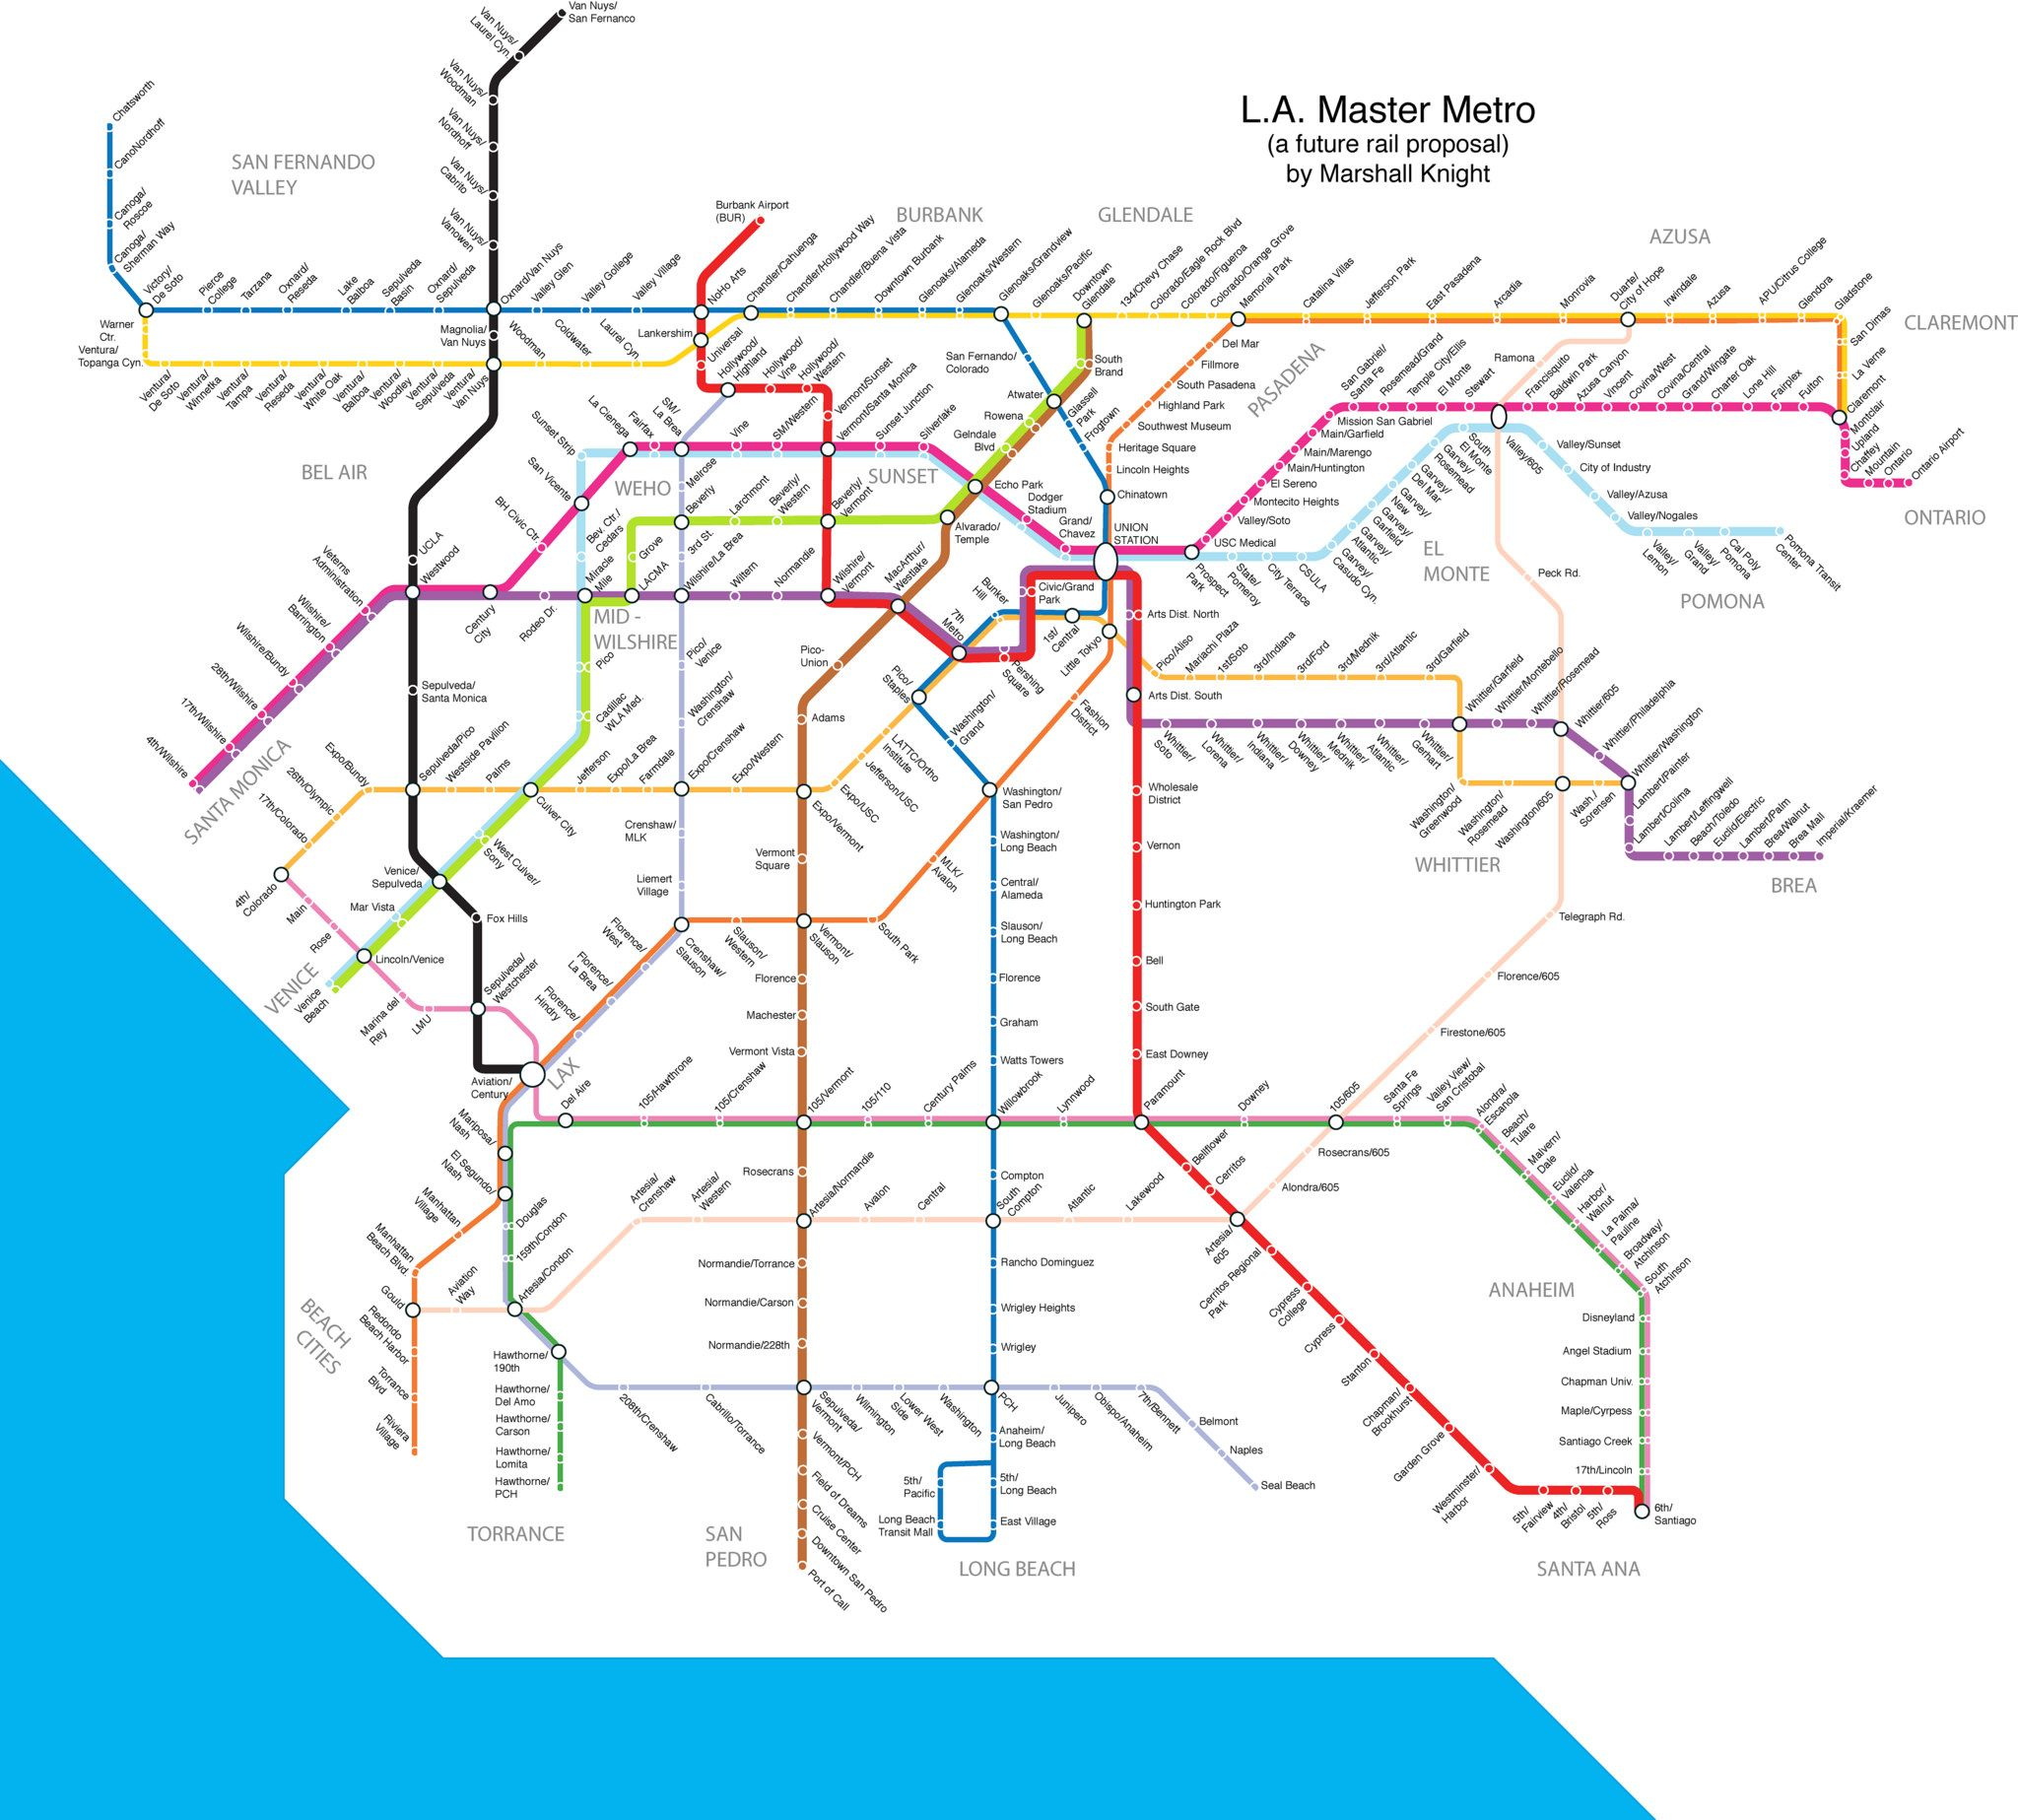 Las Angeles Underground Subway Map.Los Angeles Master Metro A Future Rail Proposal Travel Subway